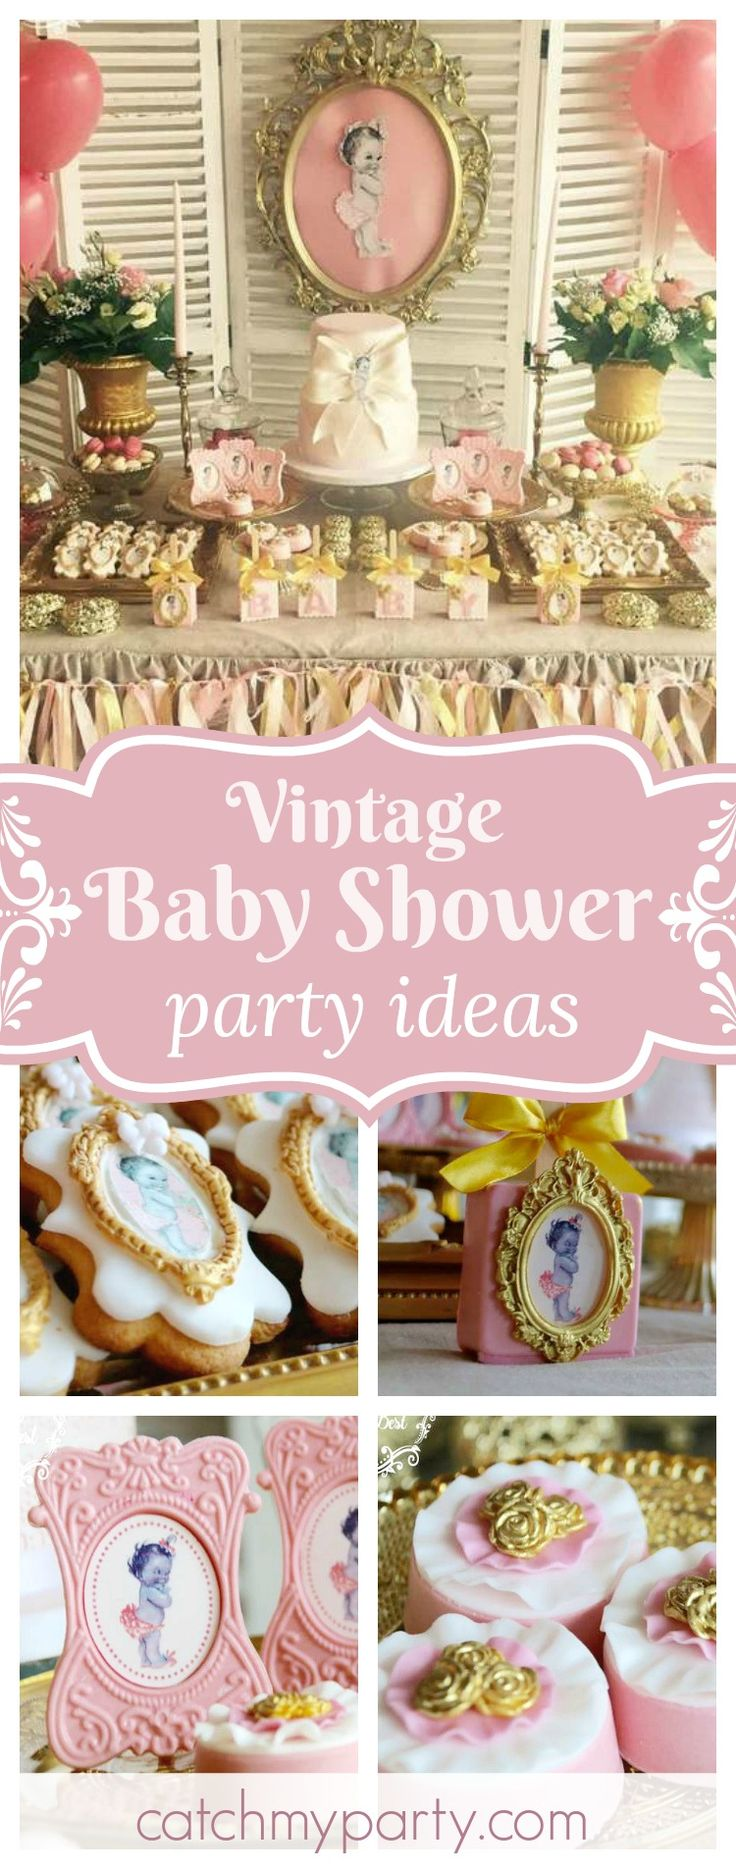 Fall in love with this gorgeous Vintage Baby Doll Baby Shower. The dessert table is stunning!! See more party ideas and share yours at CatchMyParty.com